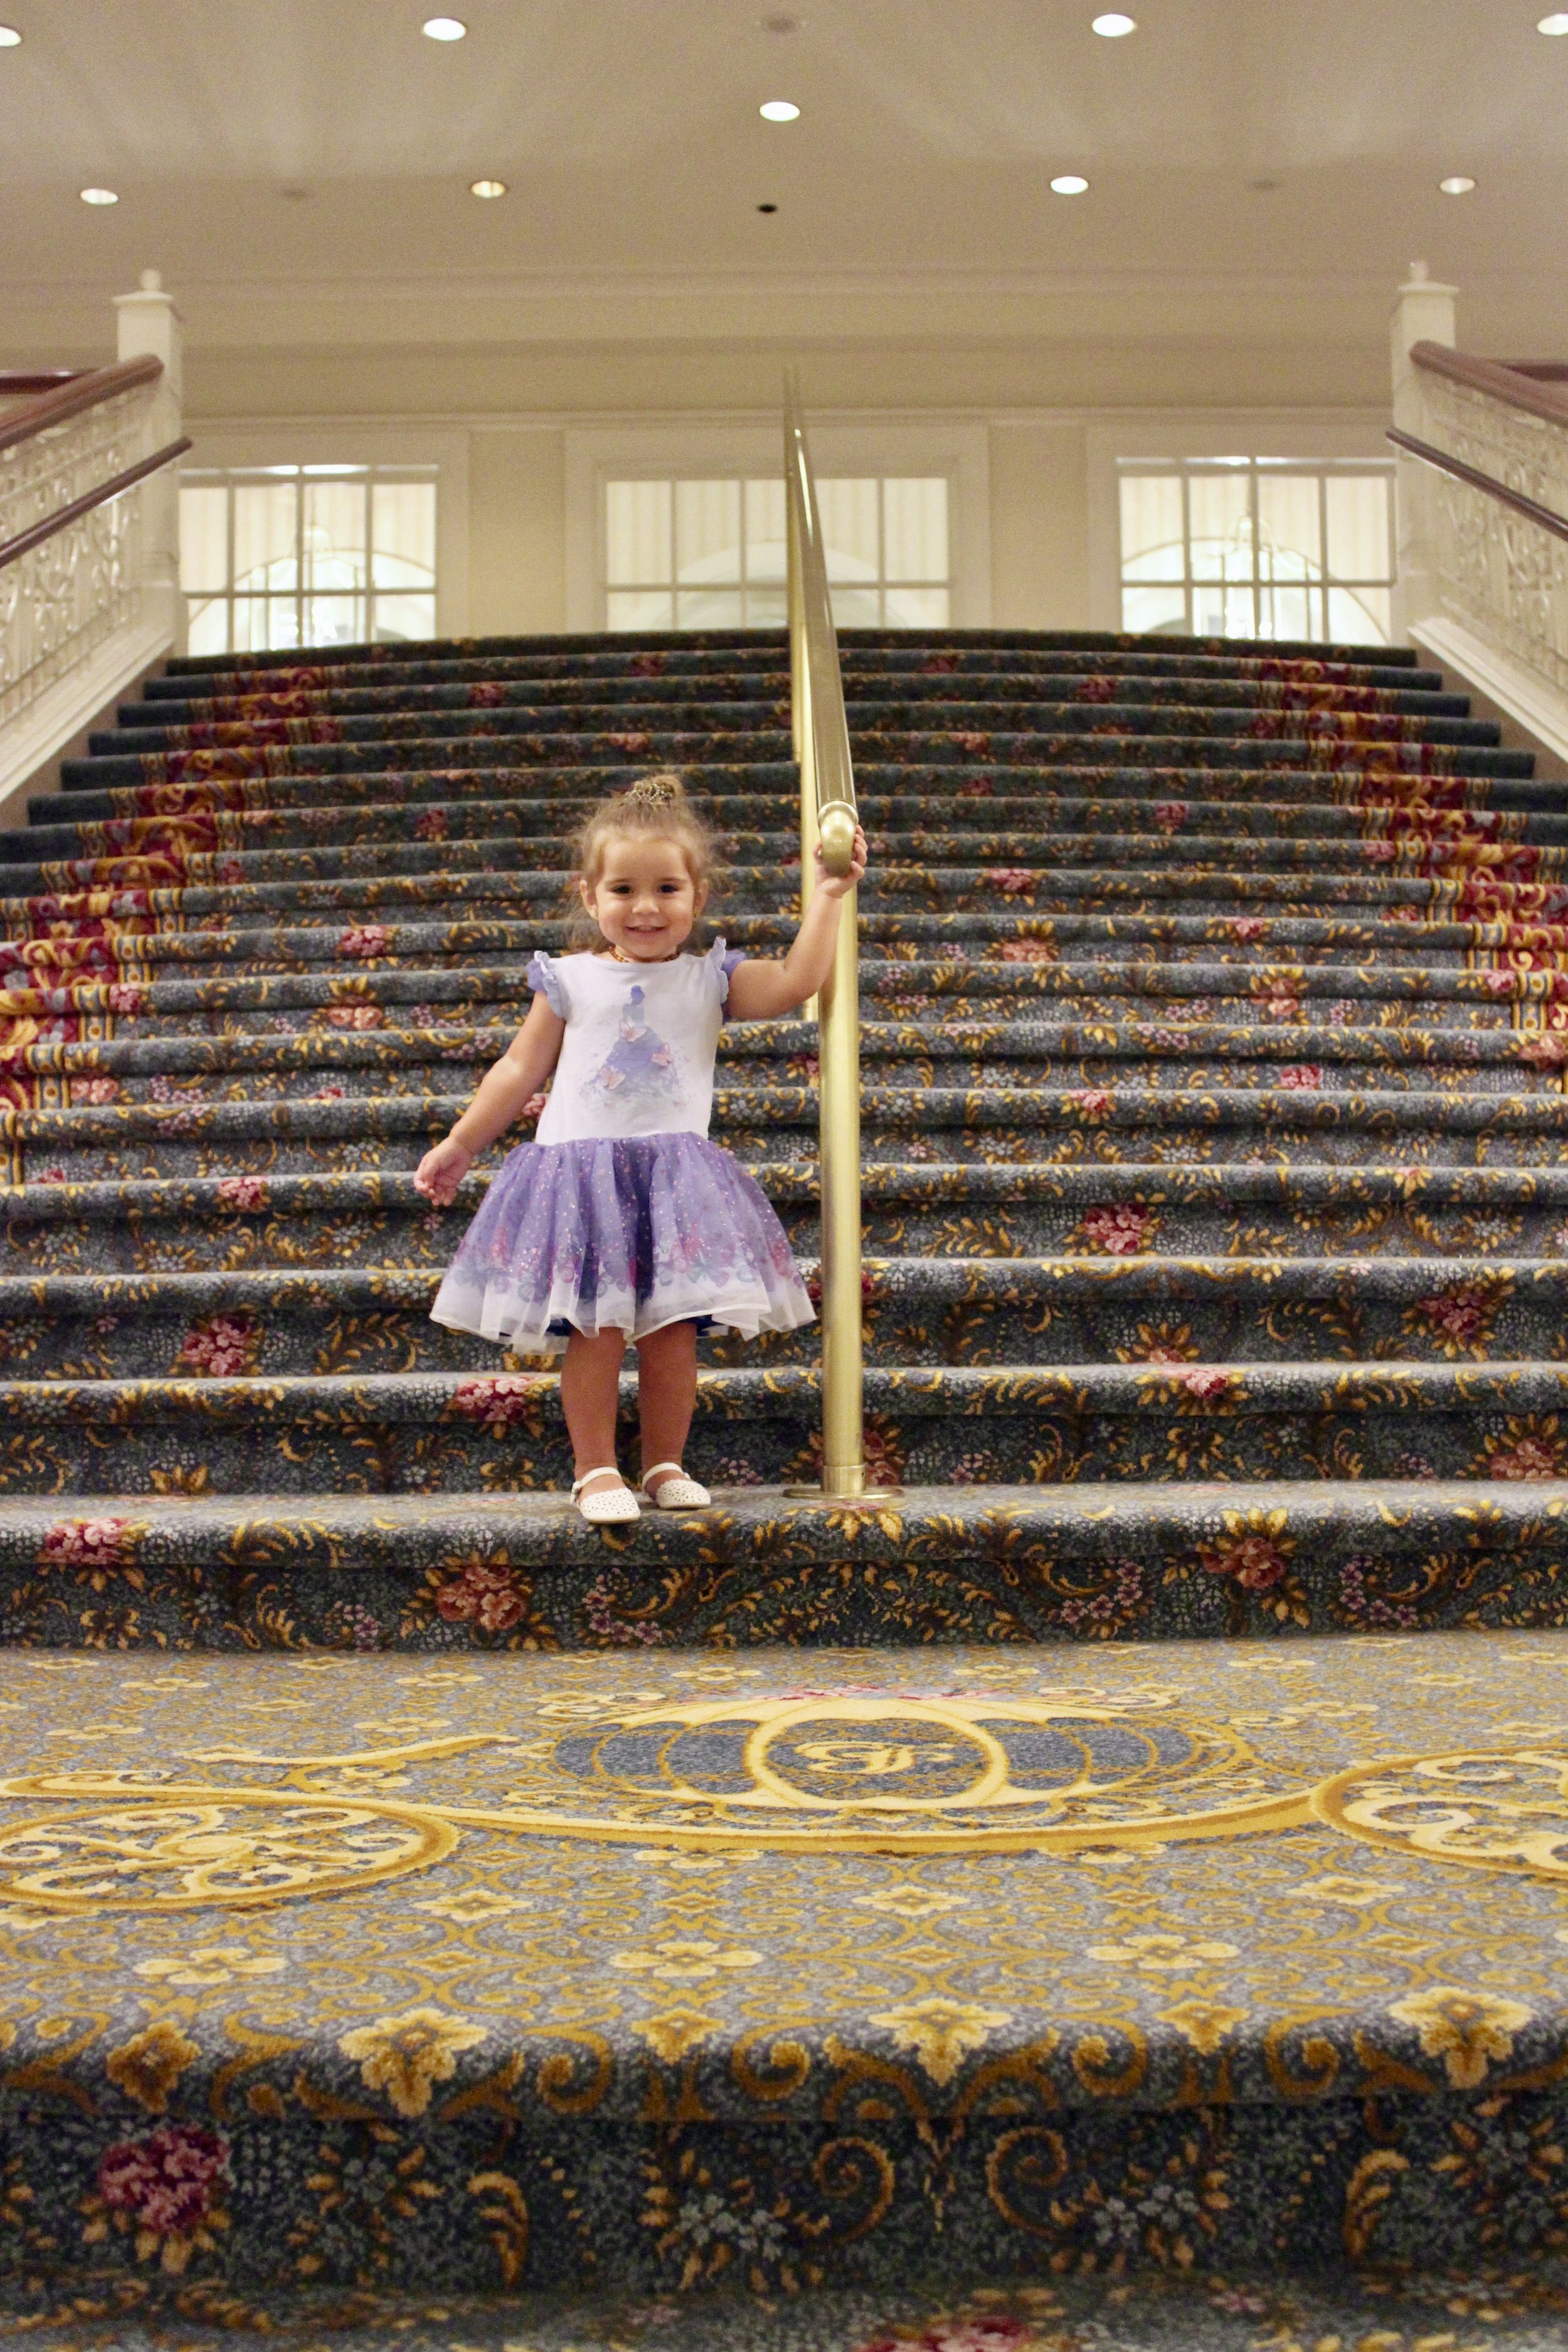 Little miss was putting on a dance show on that flat area to the music playing throughout the hotel.